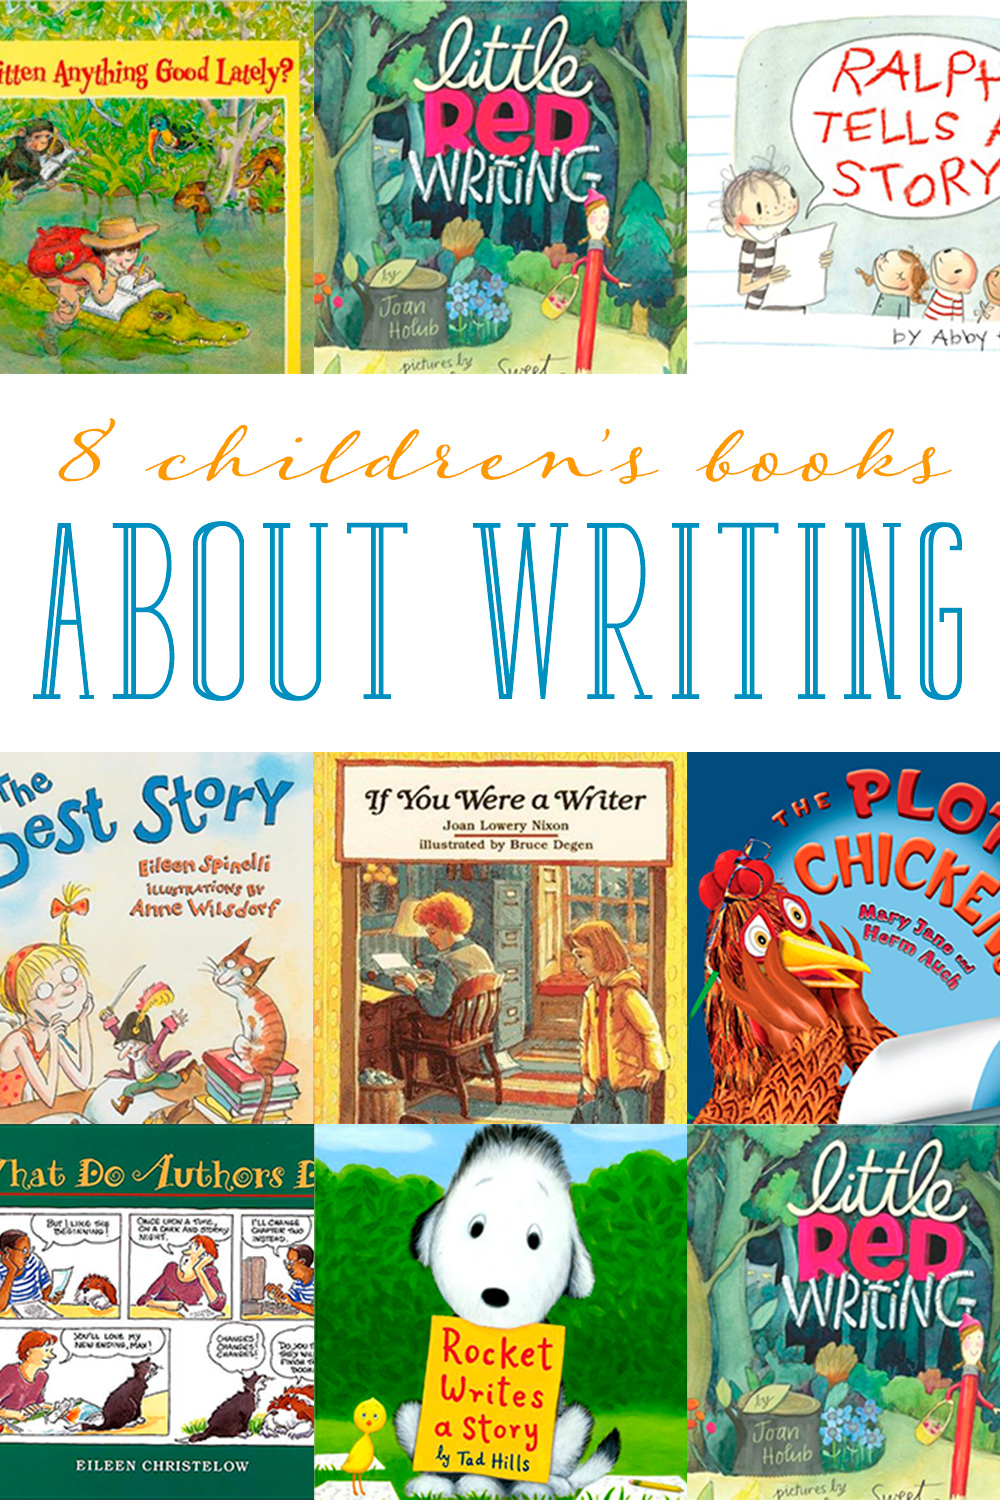 10 TIPS FOR WRITING CHILDREN'S PICTURE BOOKS